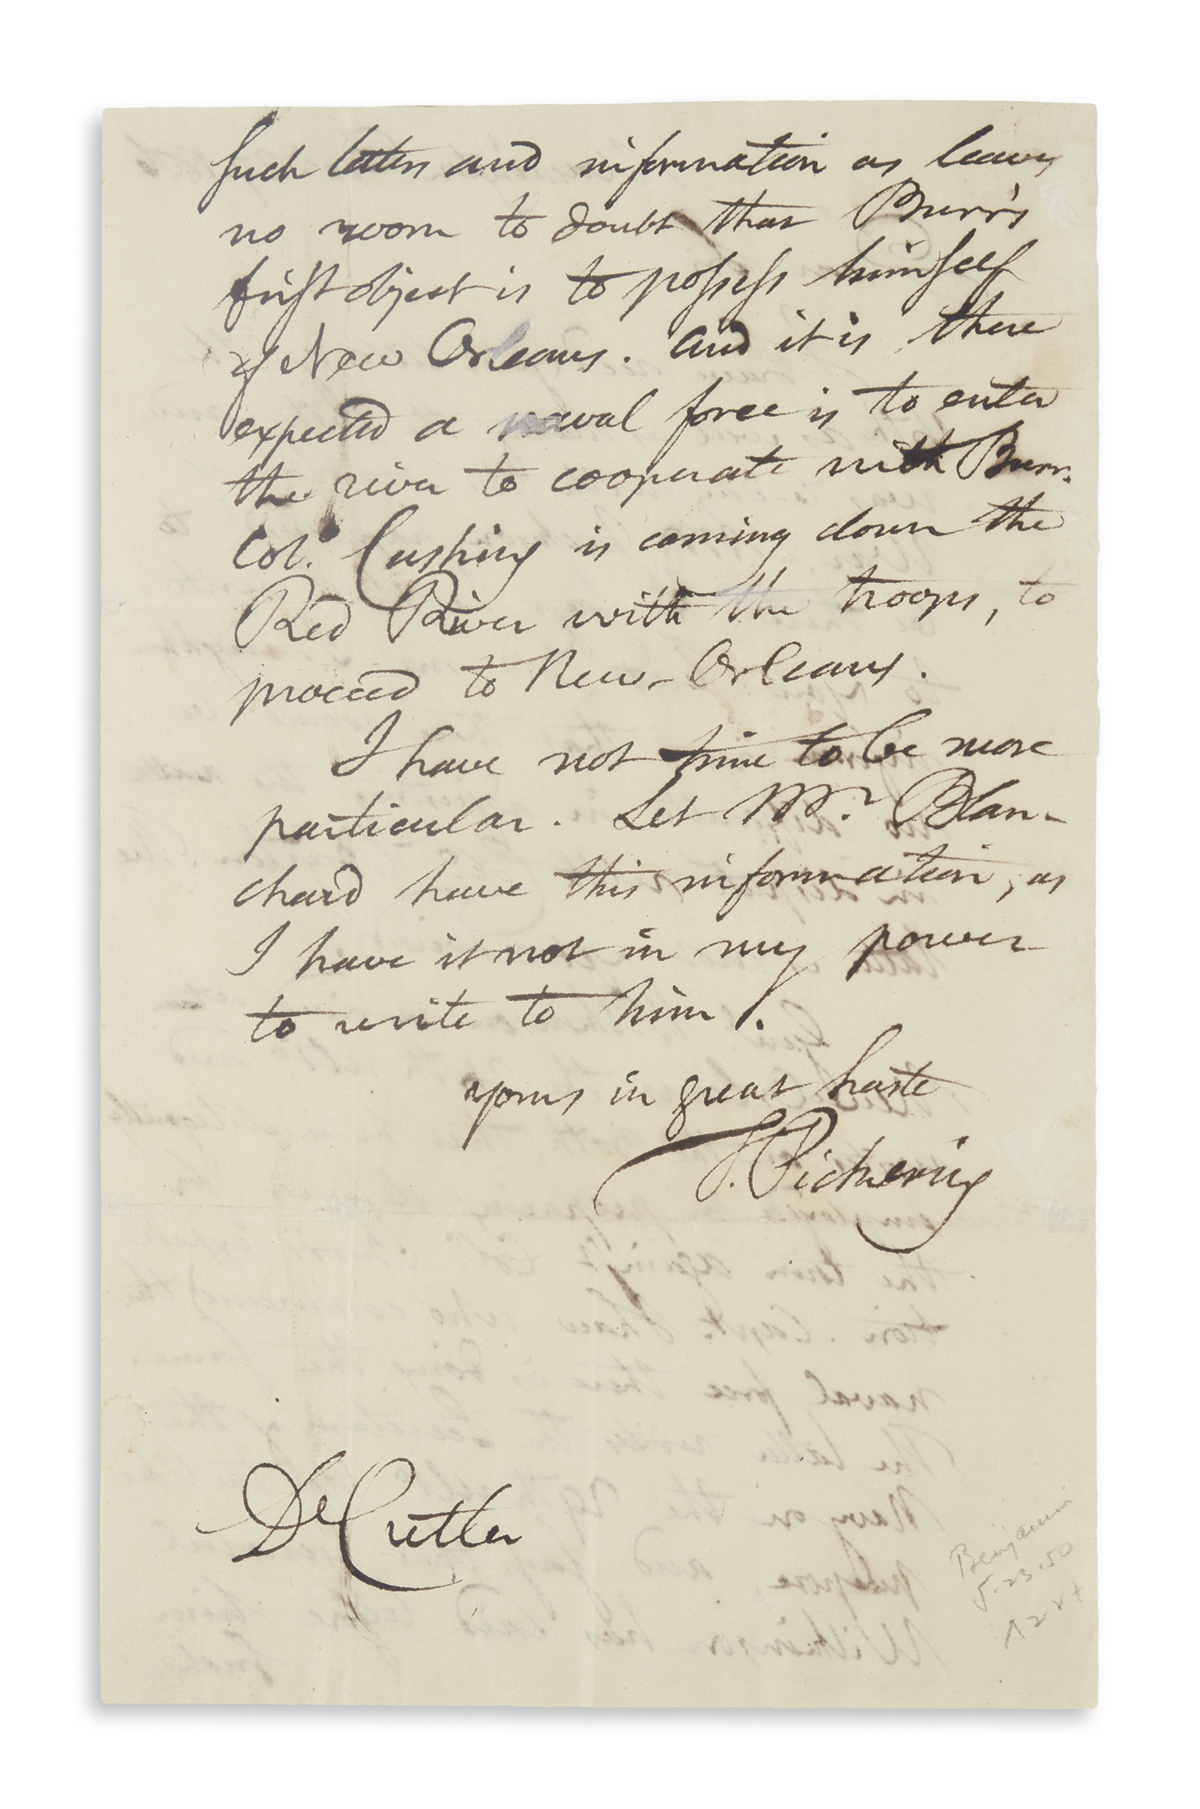 PICKERING, TIMOTHY. Autograph Letter Signed, T. Pickering, as Senator, to Dr Cutler,